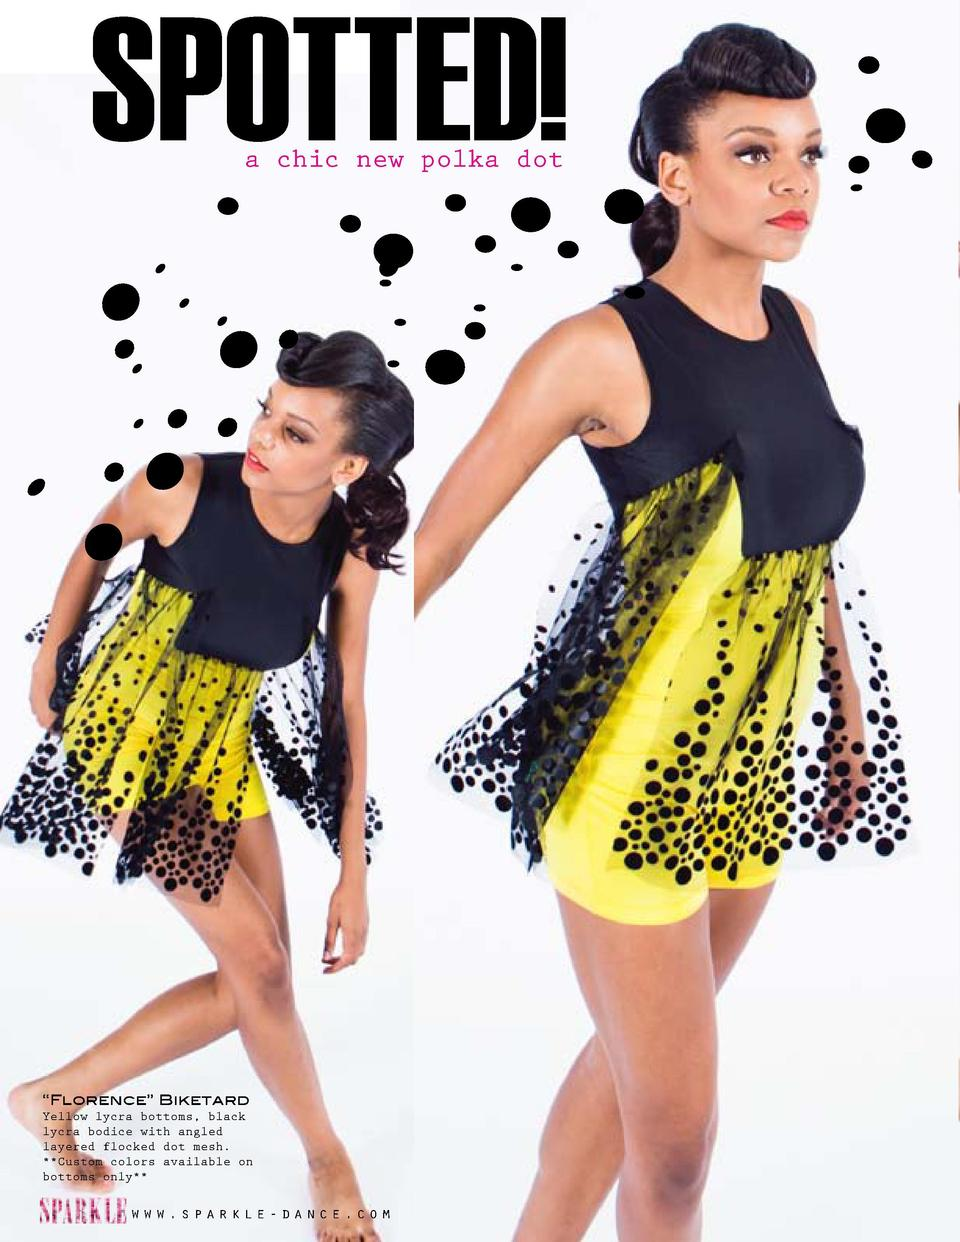 SPOTTED  a chic new polka dot     Florence    Biketard     Addison    Dress  Yellow lycra bottoms, black lycra bodice with...